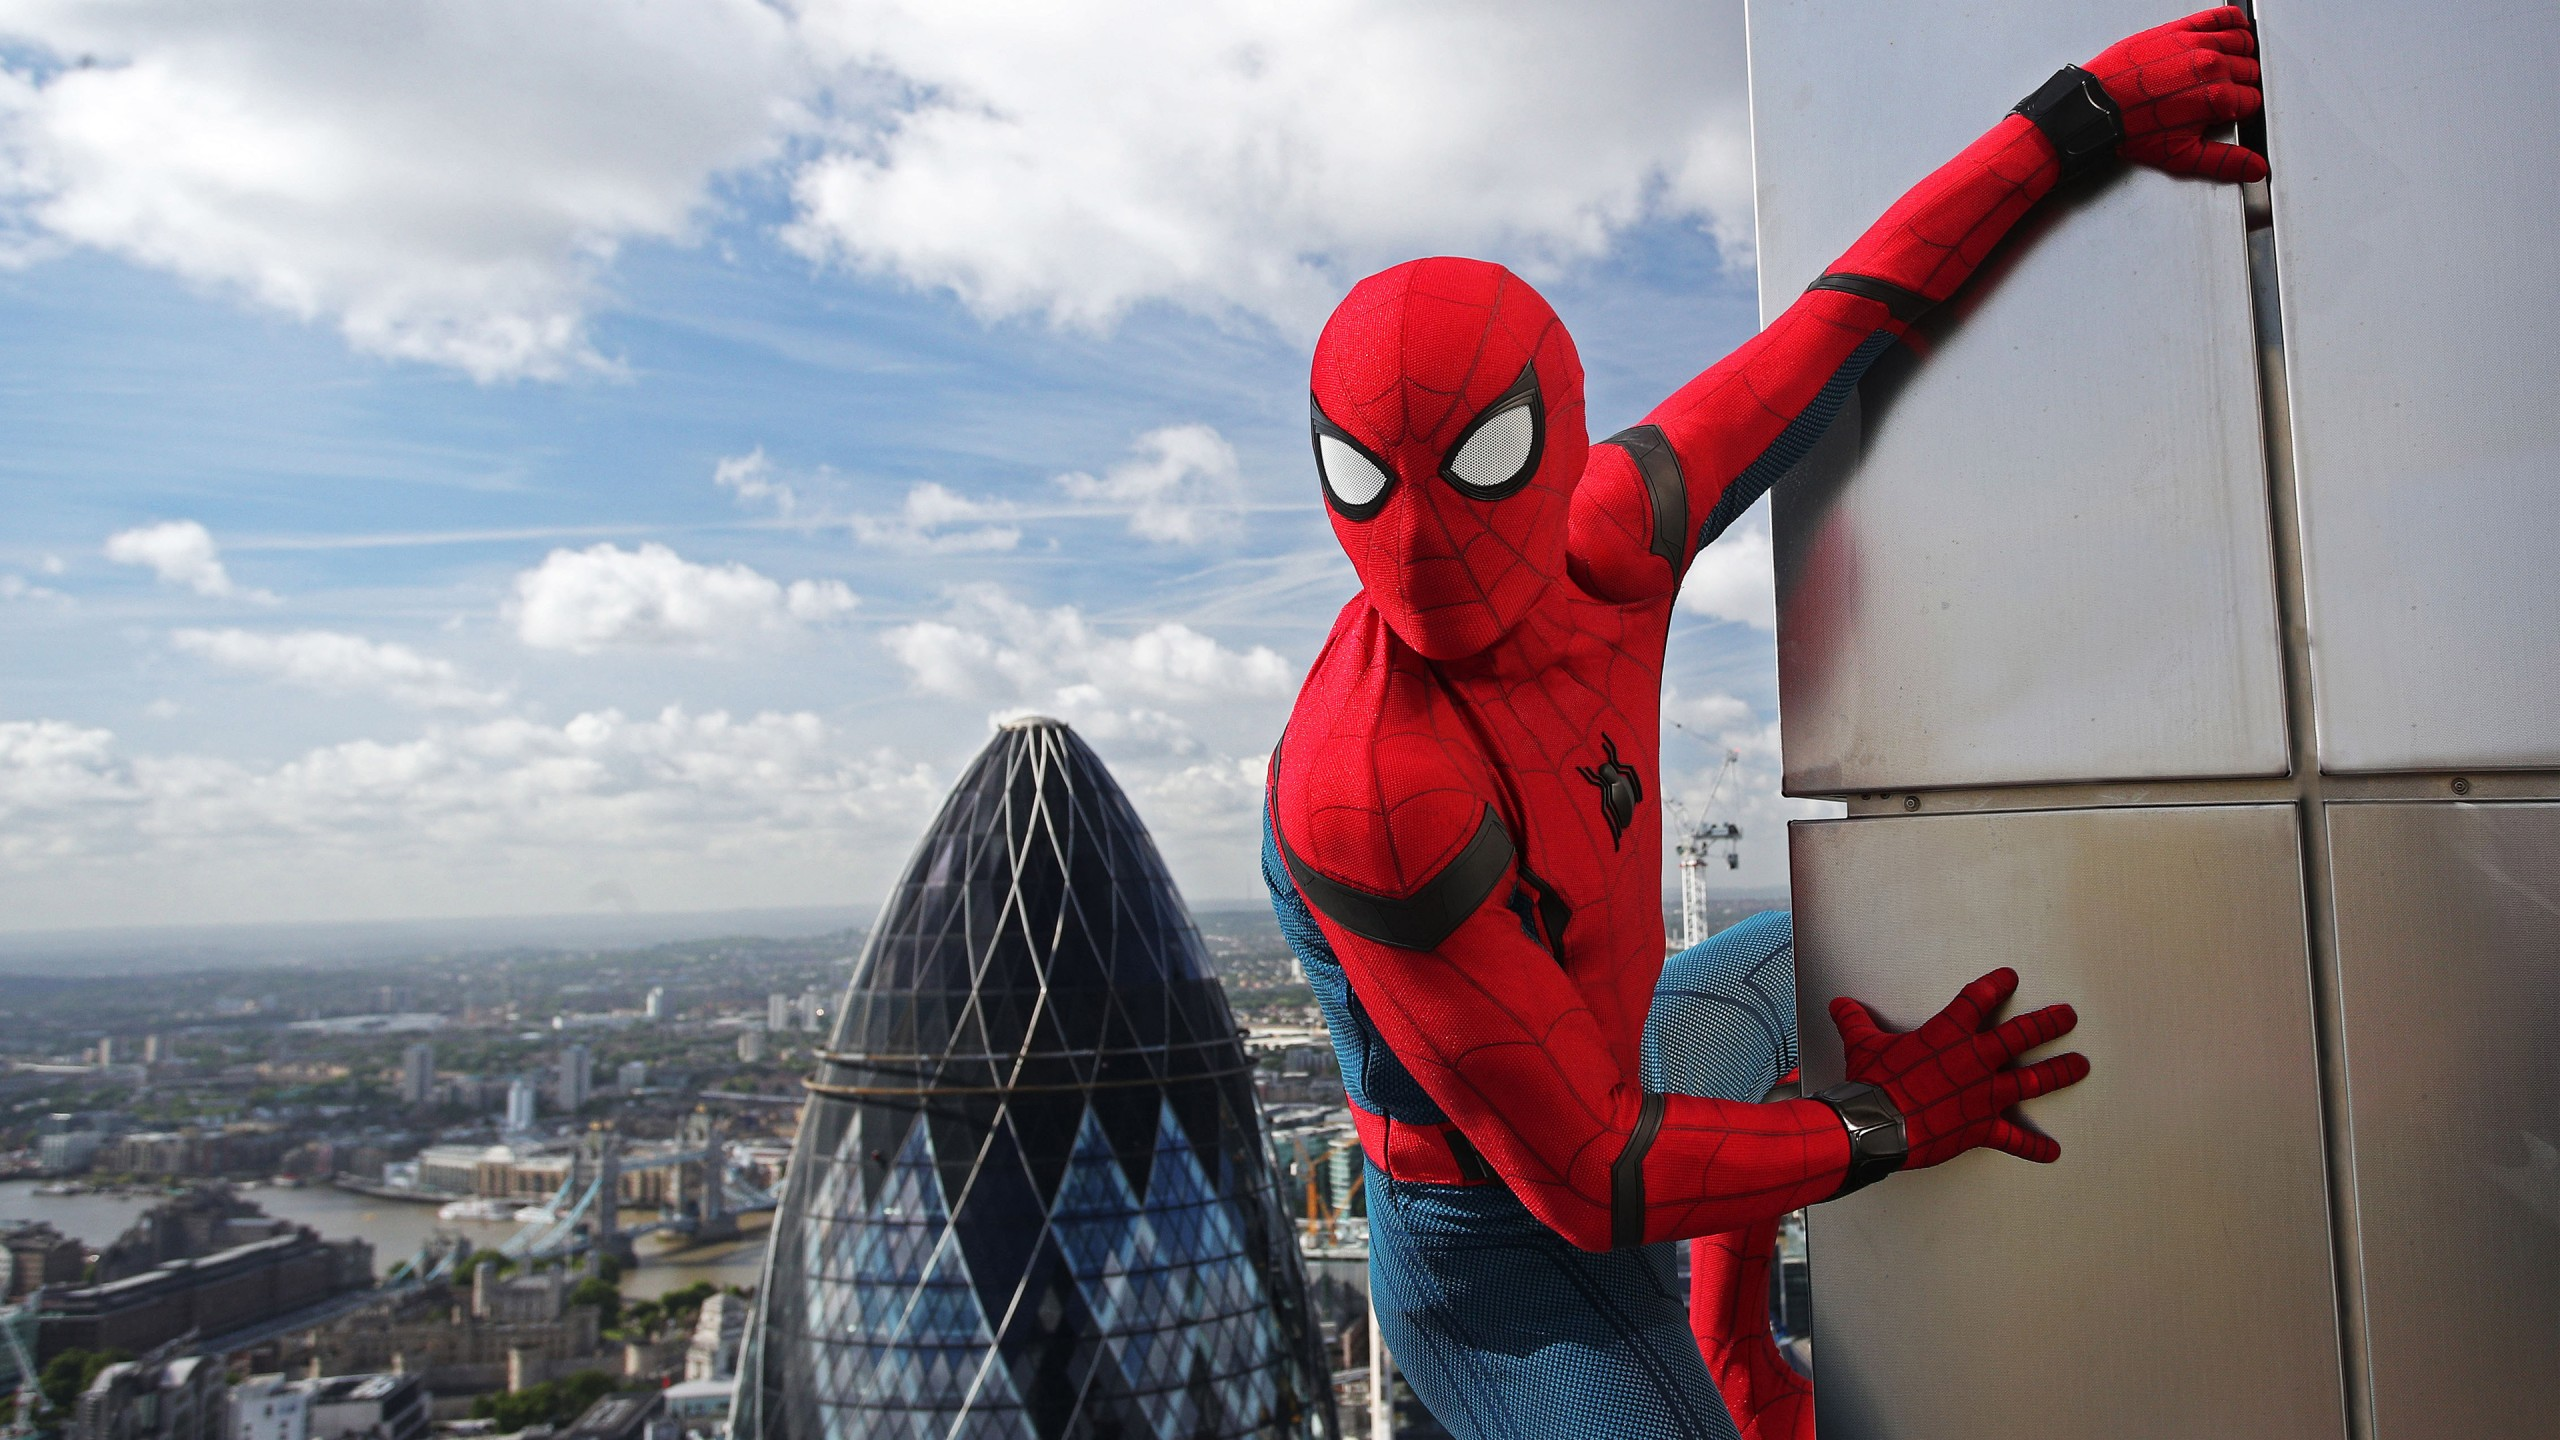 3d Love Wallpapers For Windows 8 2017 Spider Man Homecoming Hd 4k Wallpapers Hd